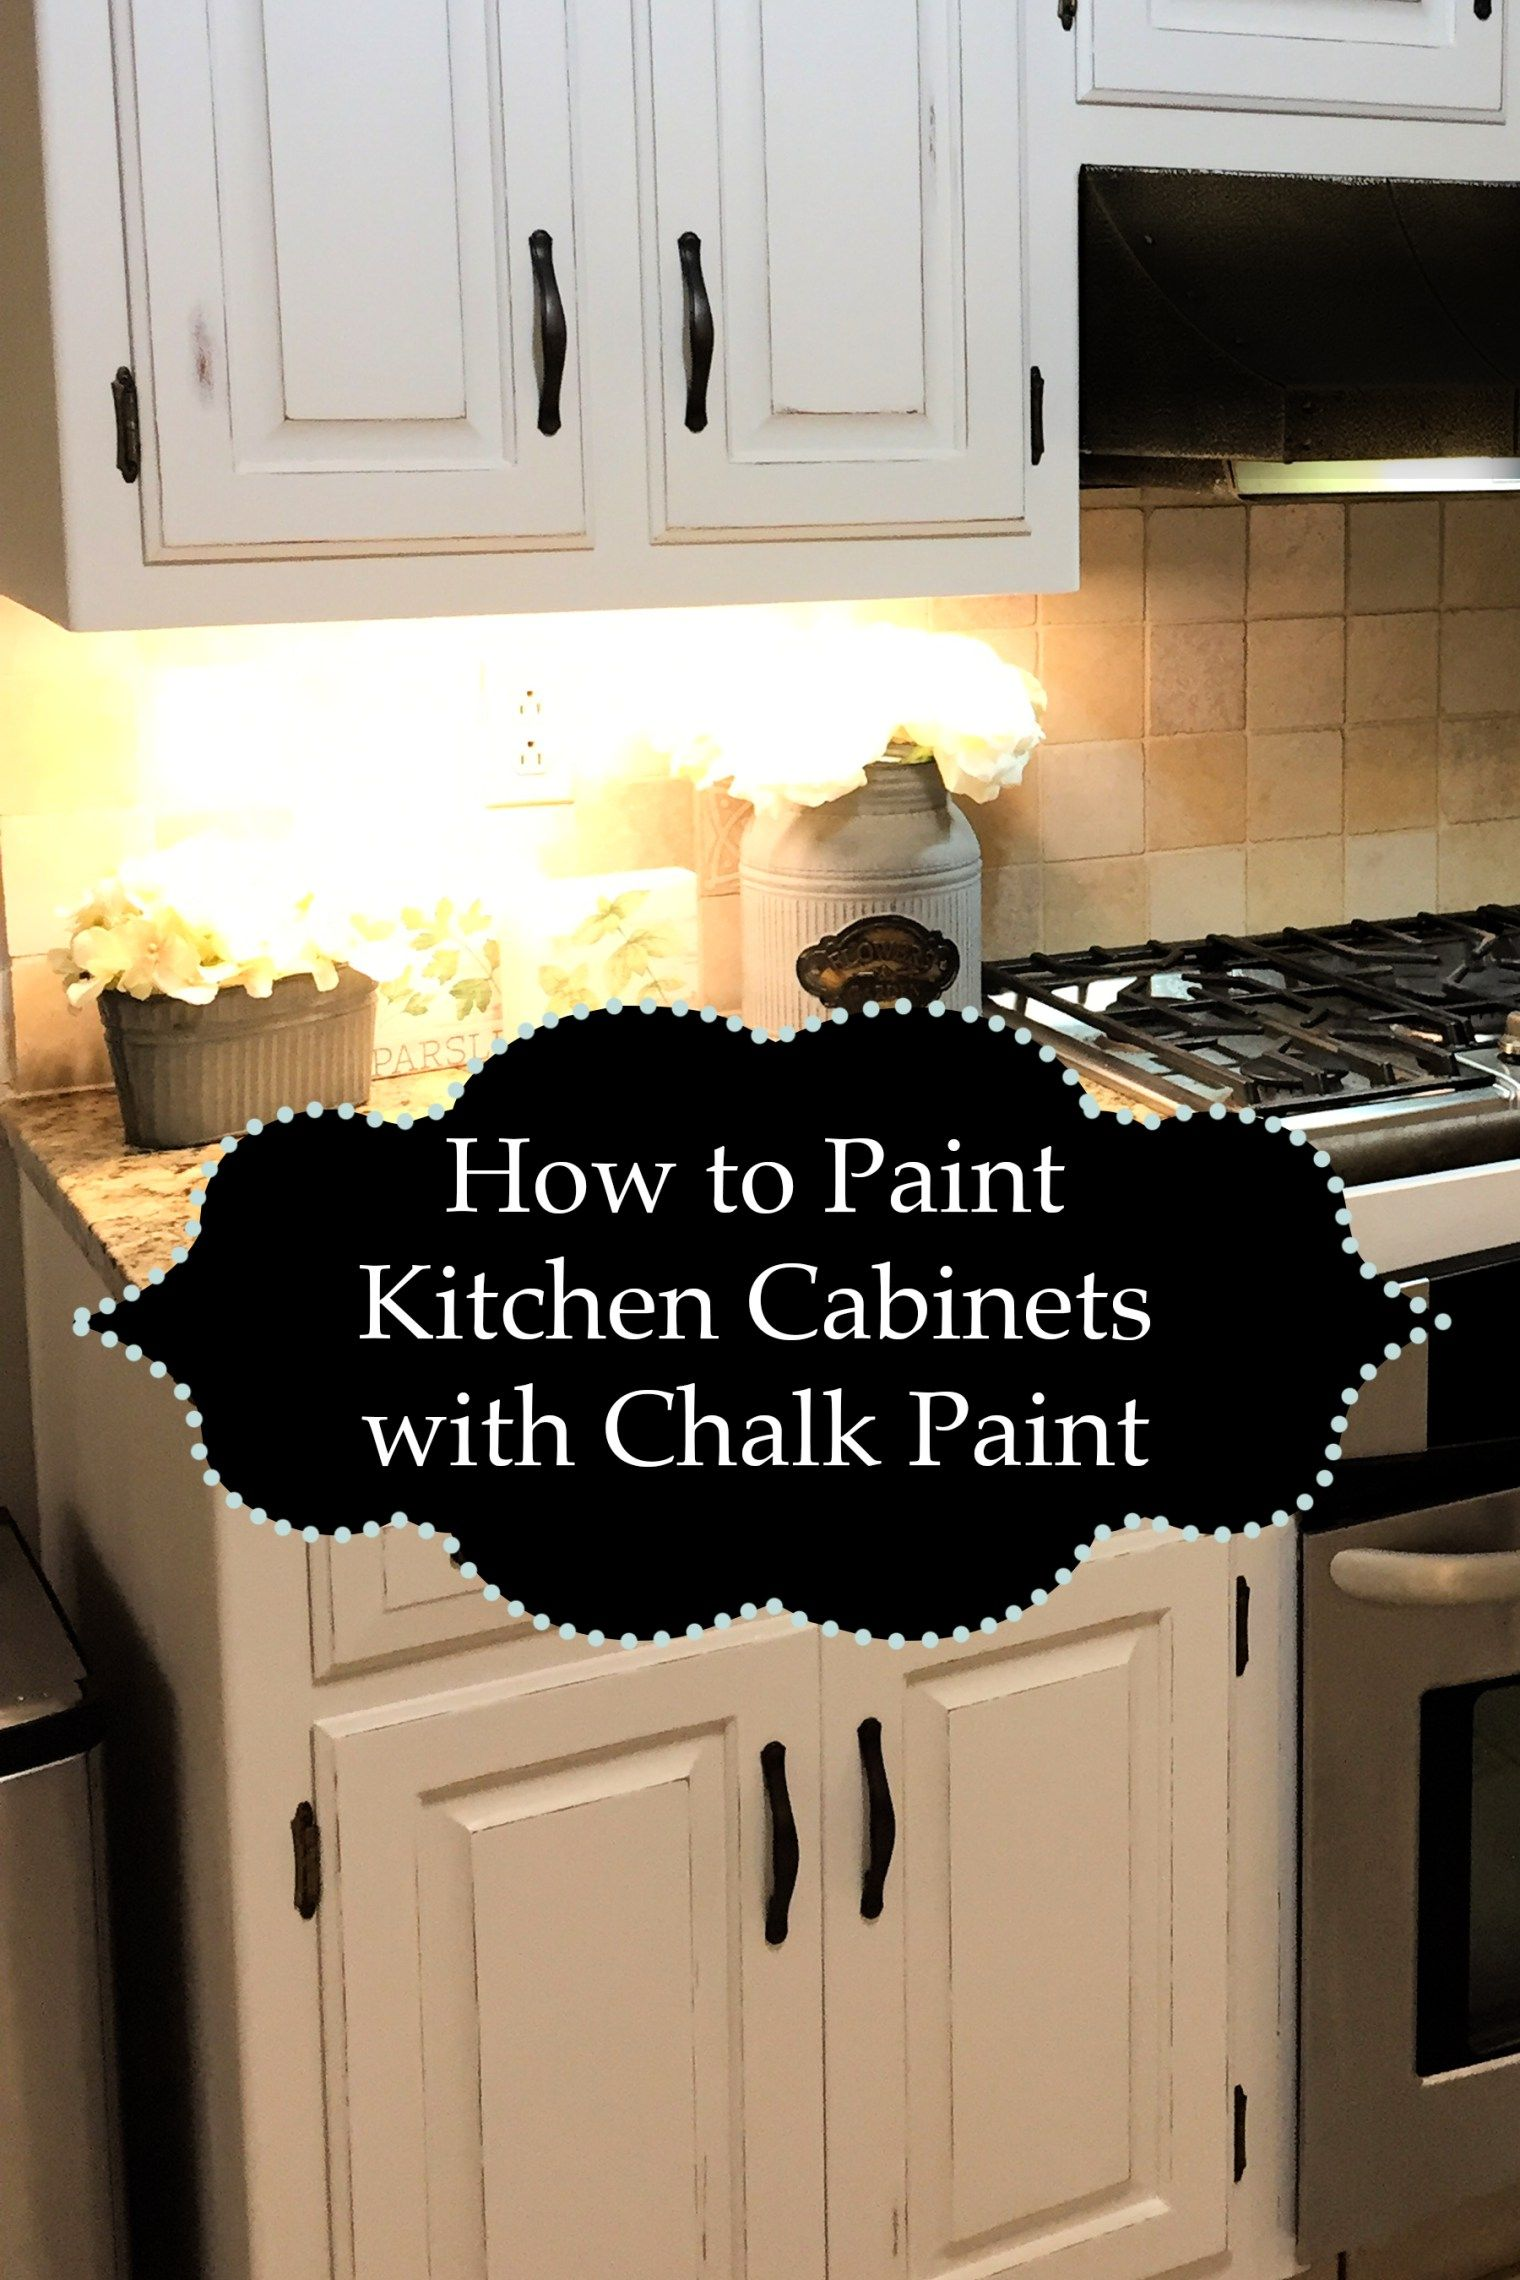 Ideas for painting kitchen cabinets  Painting Kitchen Cabinets With Chalk Paint  The Kelly Homestead